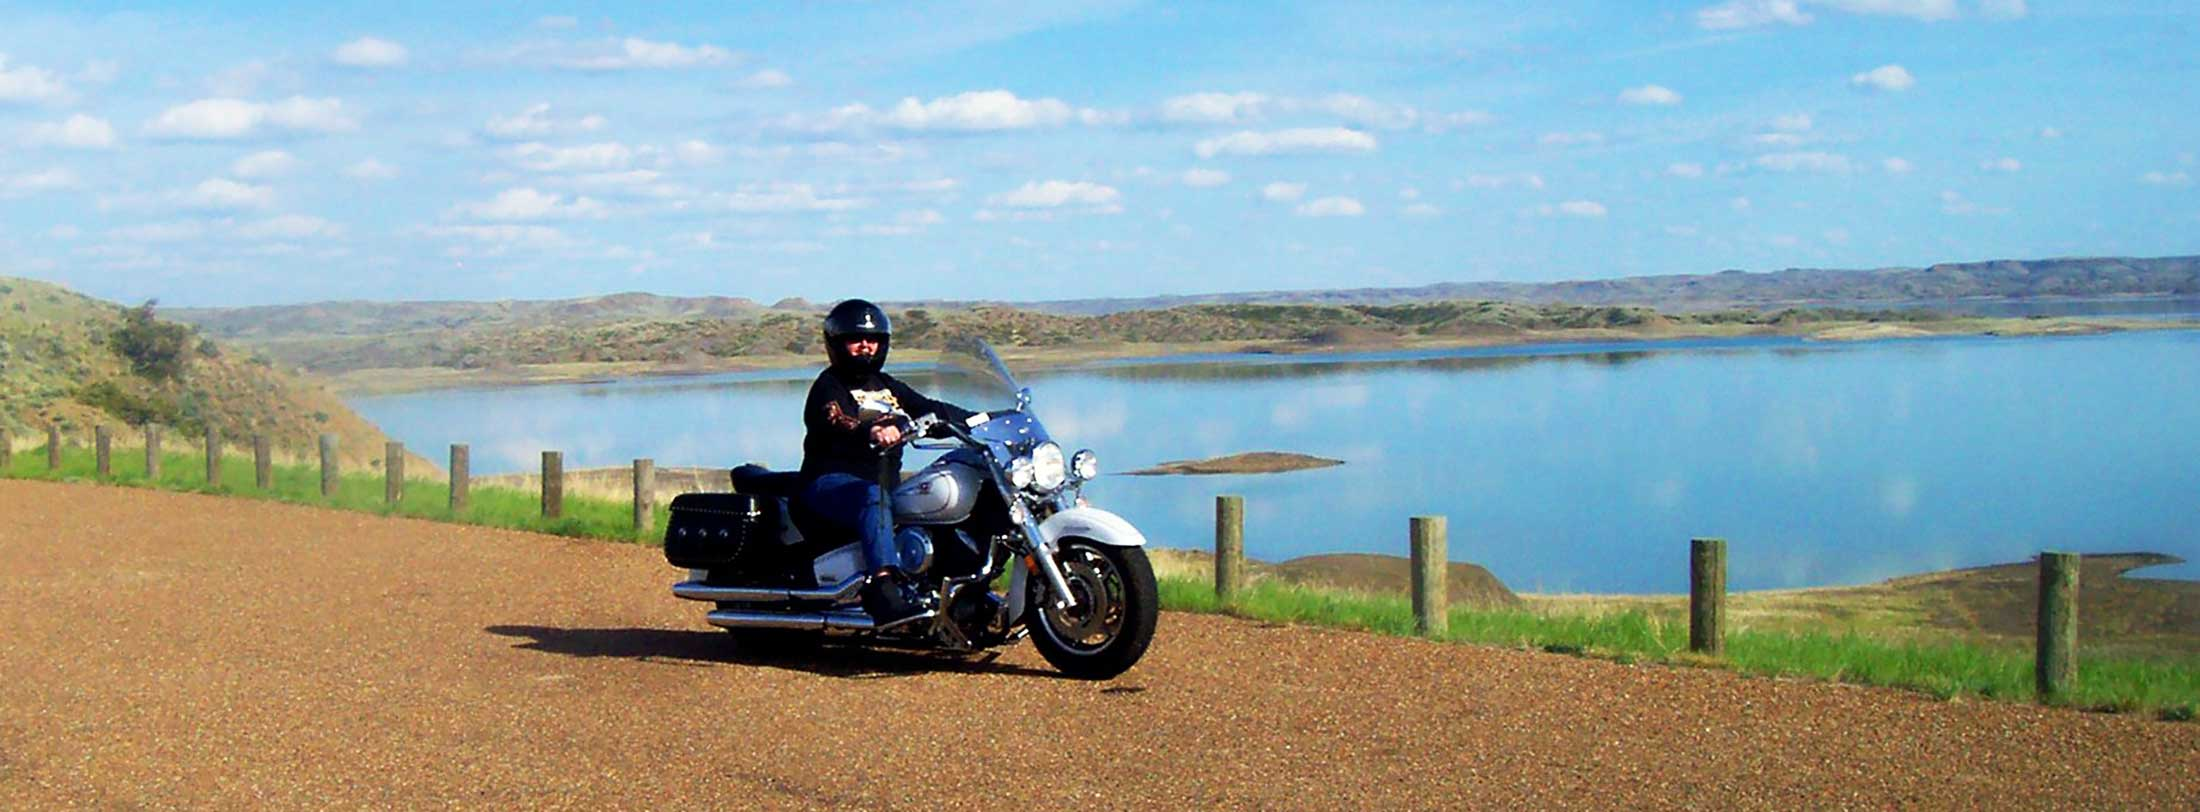 Motorcycles in Montana's Missouri River Country